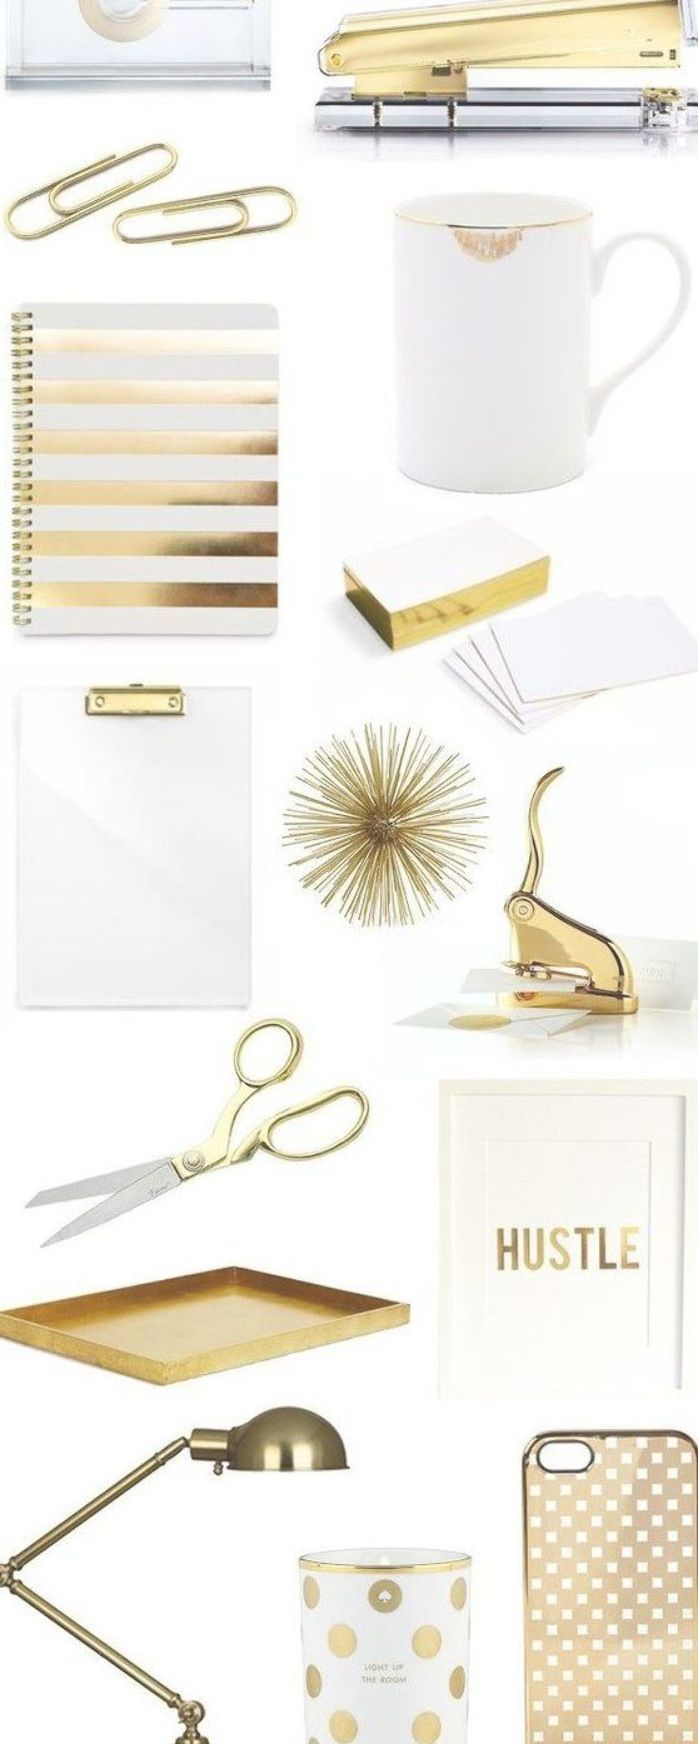 Home Accessory Pinterest Gold Notebook Lamp Candle Desk Office Supplies Home Furniture Stationar Gold Office Accessories Gold Office Home Office Decor